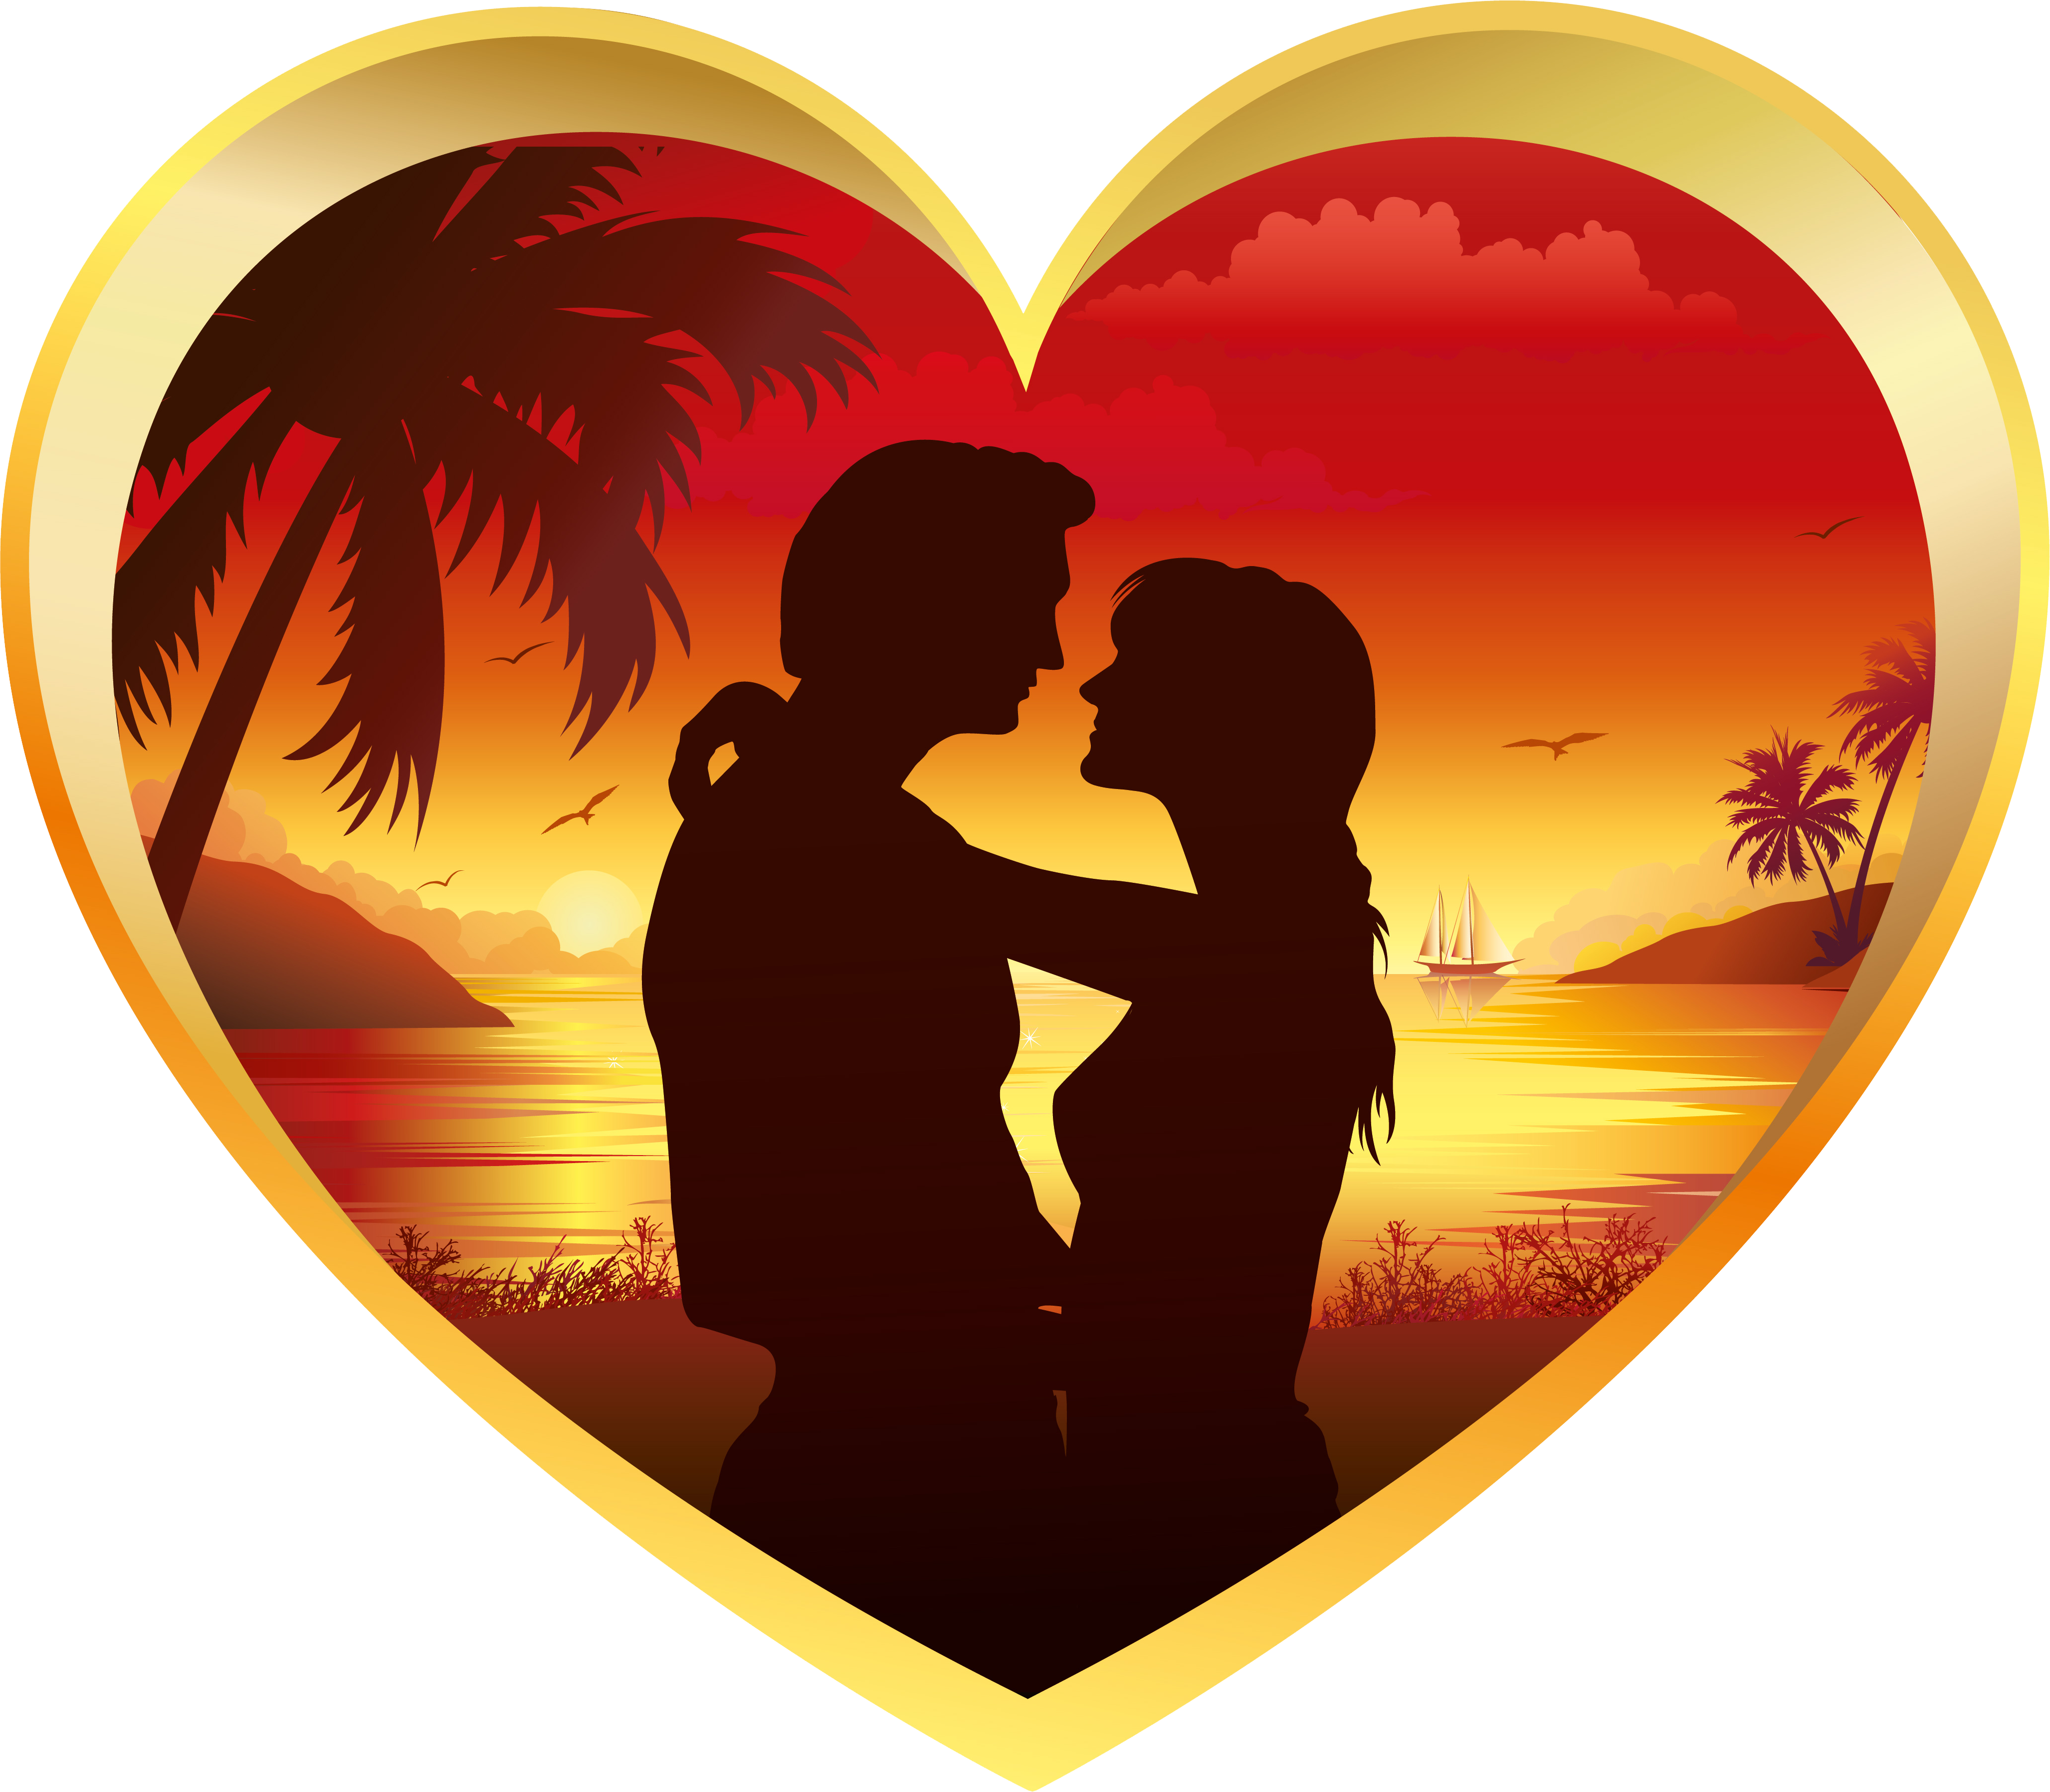 Touching hearts love poems. Poetry clipart declaration